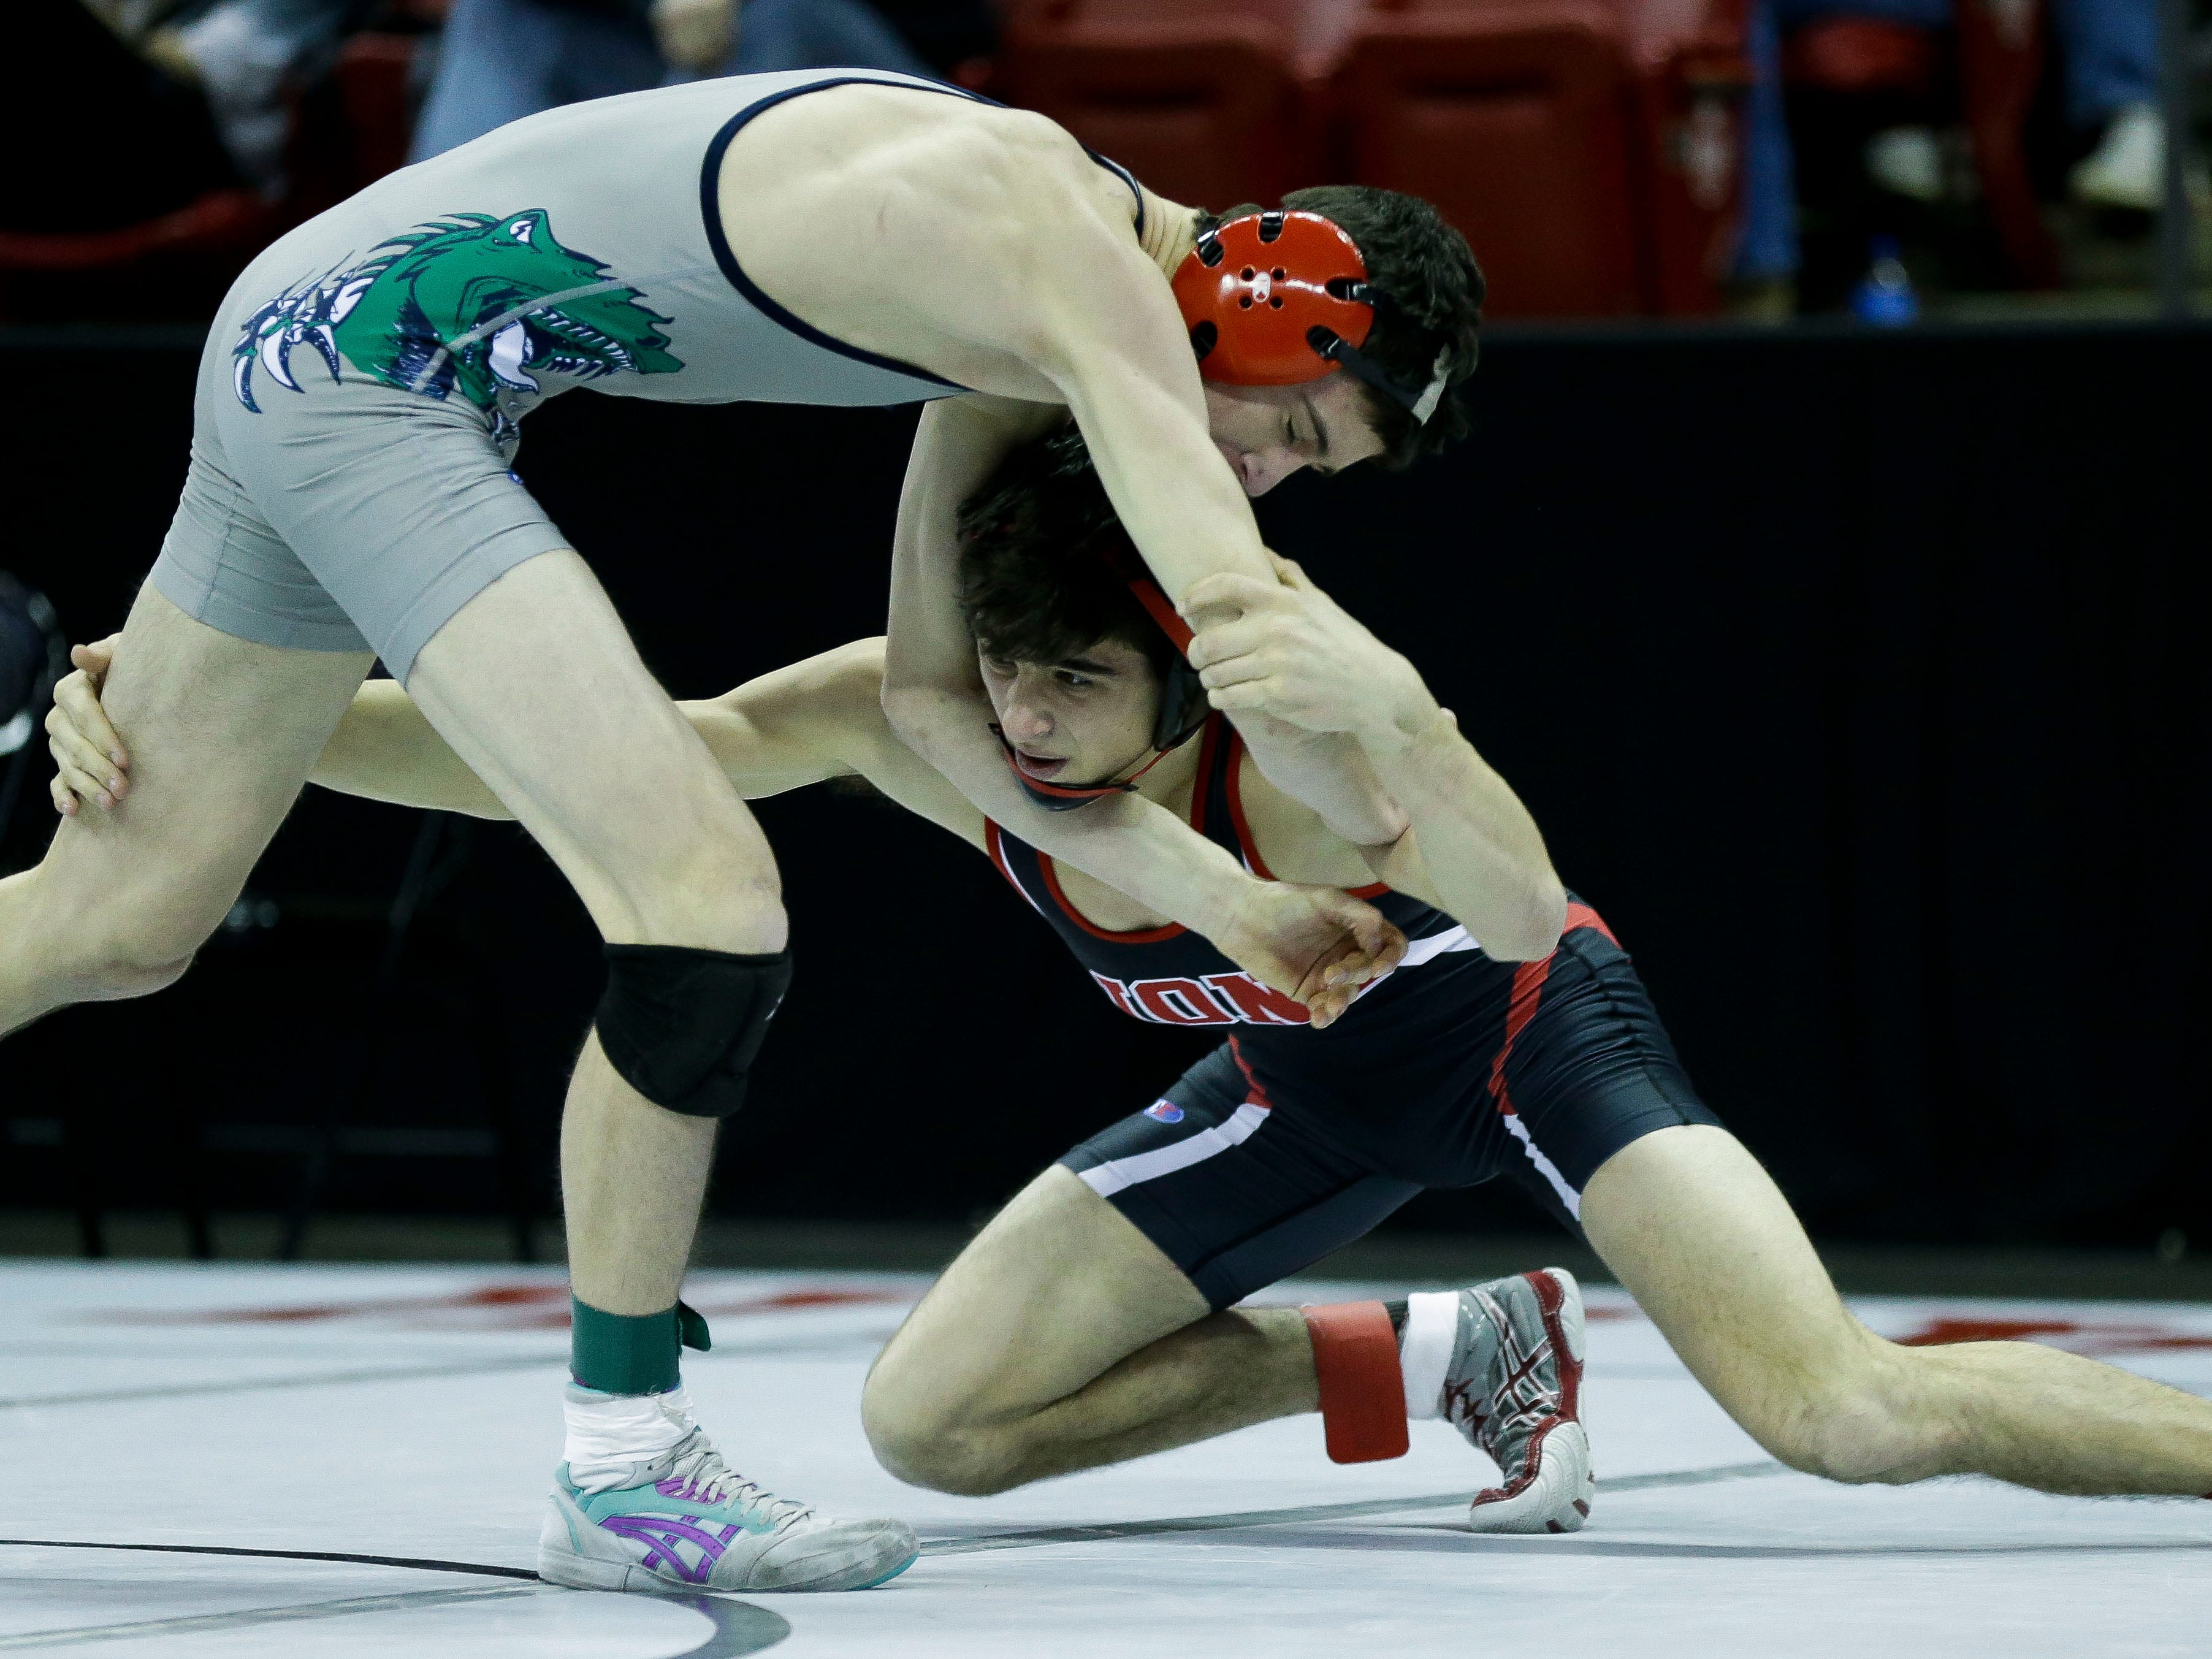 Lomira's Alex Gundrum wrestles against Bloomer/Colfax's Sawyer Best in a Division 2 132-pound preliminary match during the WIAA state wrestling tournament on Thursday, February 21, 2019, at the Kohl Center in Madison, Wis.